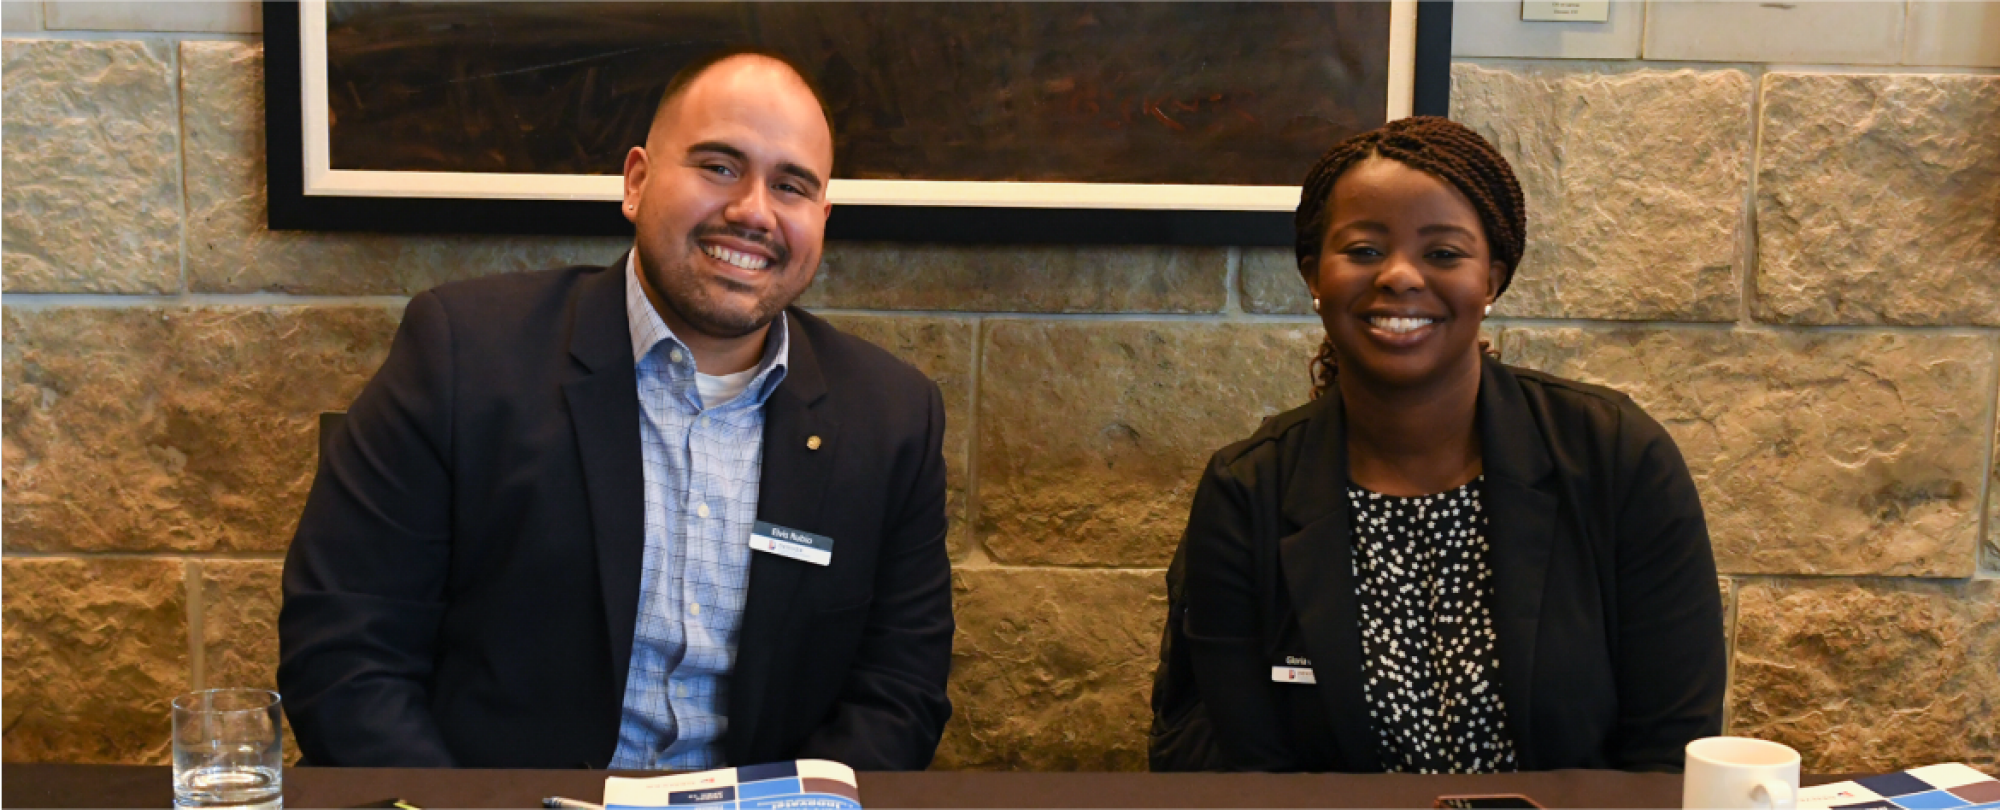 Two people posing together at a 2019 Denver Housing Forum table